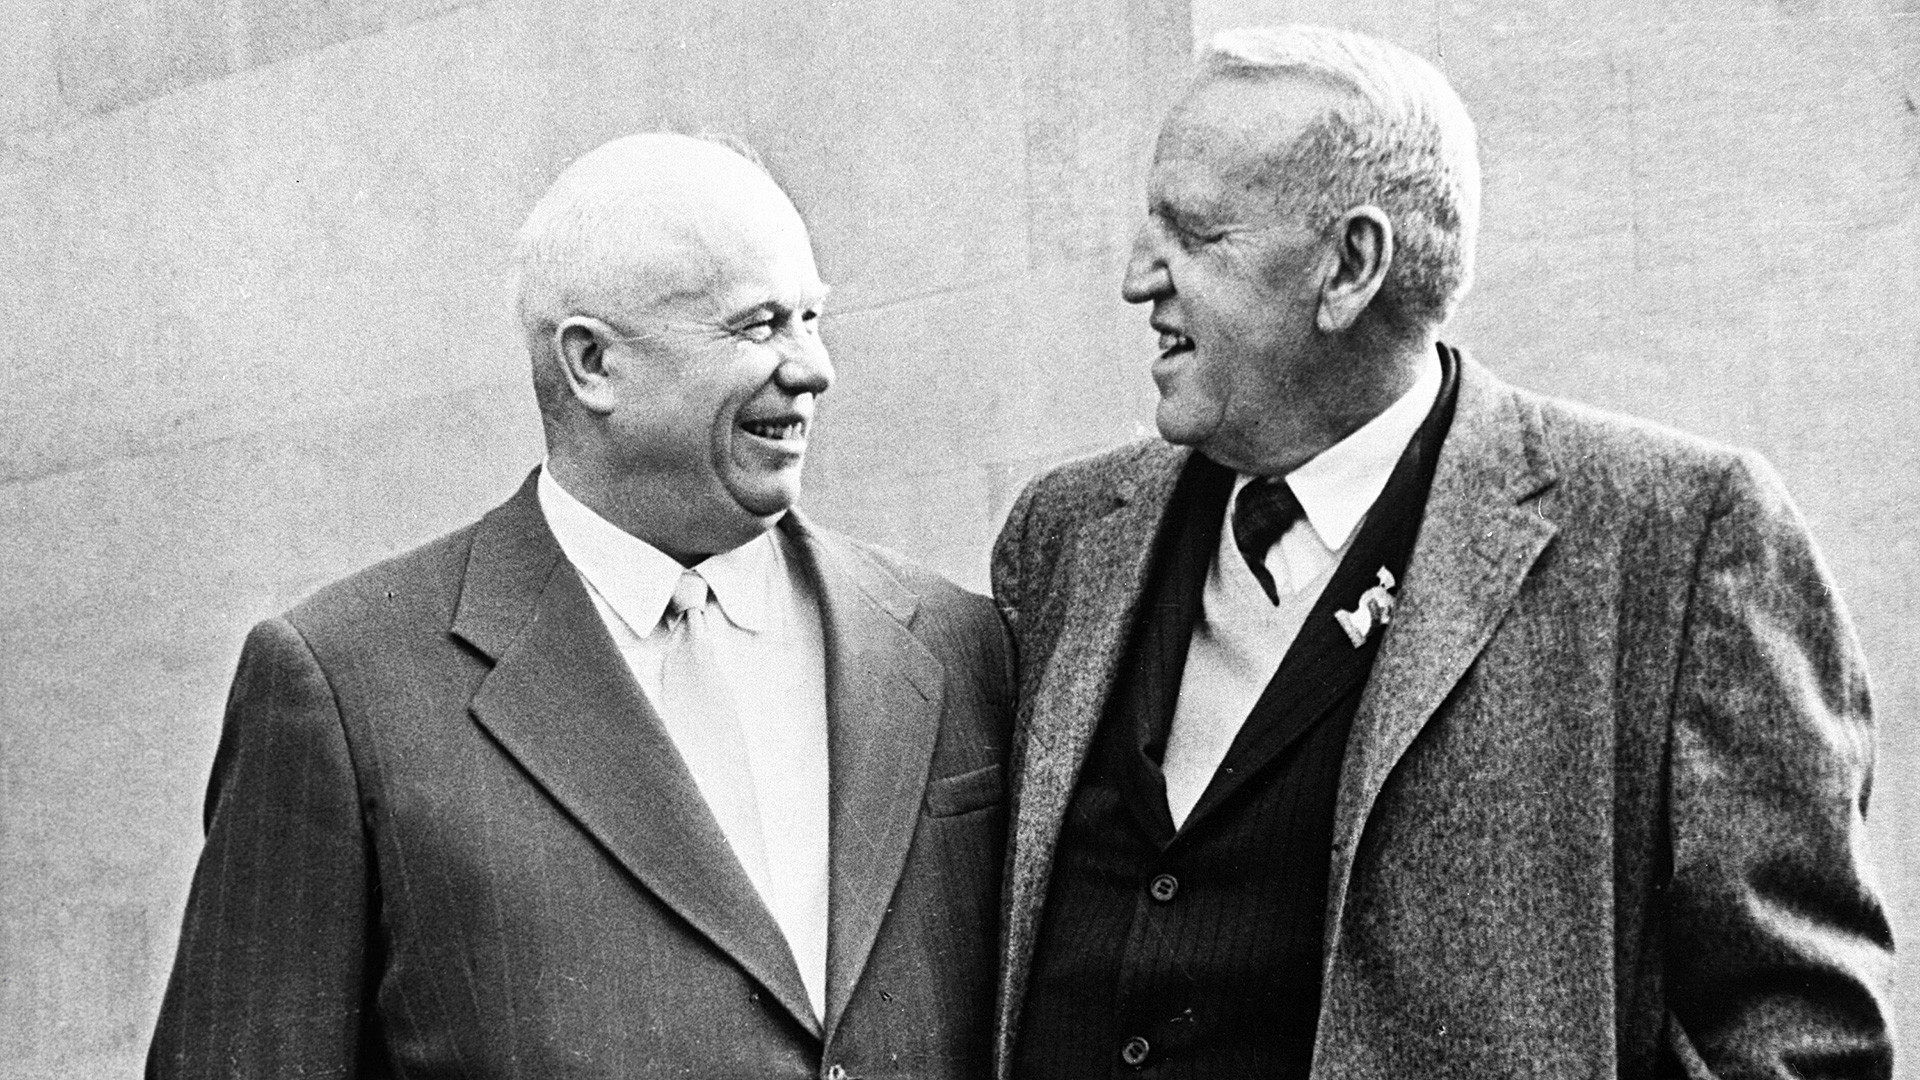 rencontre khrouchtchev eisenhower)